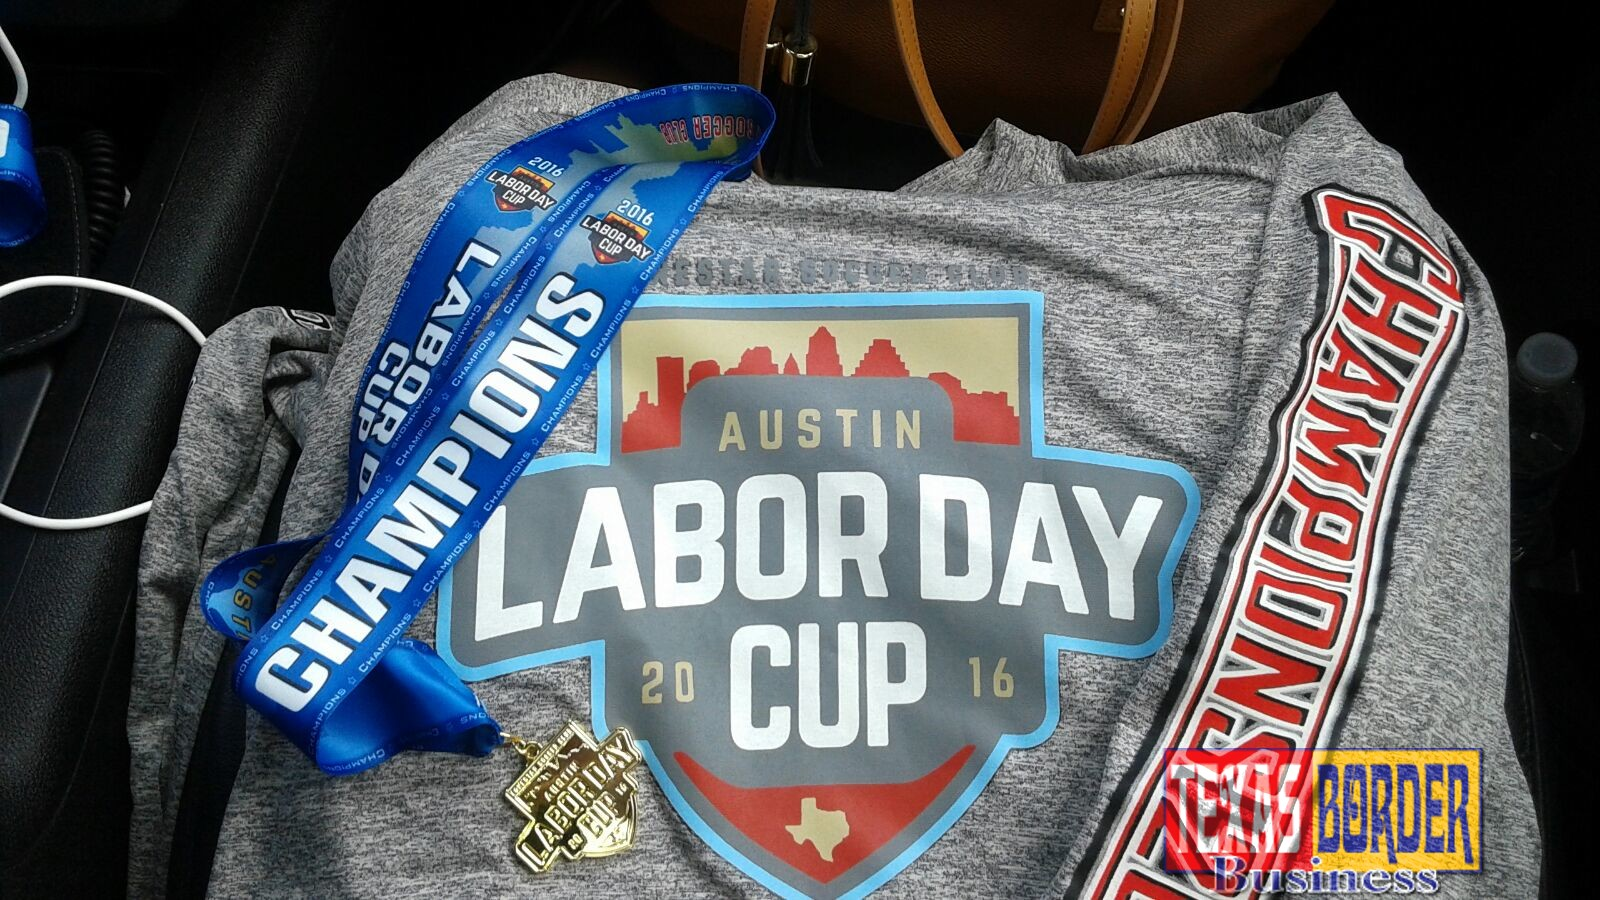 The McAllen United Angels won the 2016 Austin Labor Day Cup ... on london day, brooklyn day, seattle day, west virginia day, african american day, idaho day, hong kong day, milwaukee day, nashville day, oklahoma day, boston day, new york city day, los angeles day, tokyo day, arlington country day, st. patrick's day, south carolina day, st. andrew's day, delaware day, savannah day,